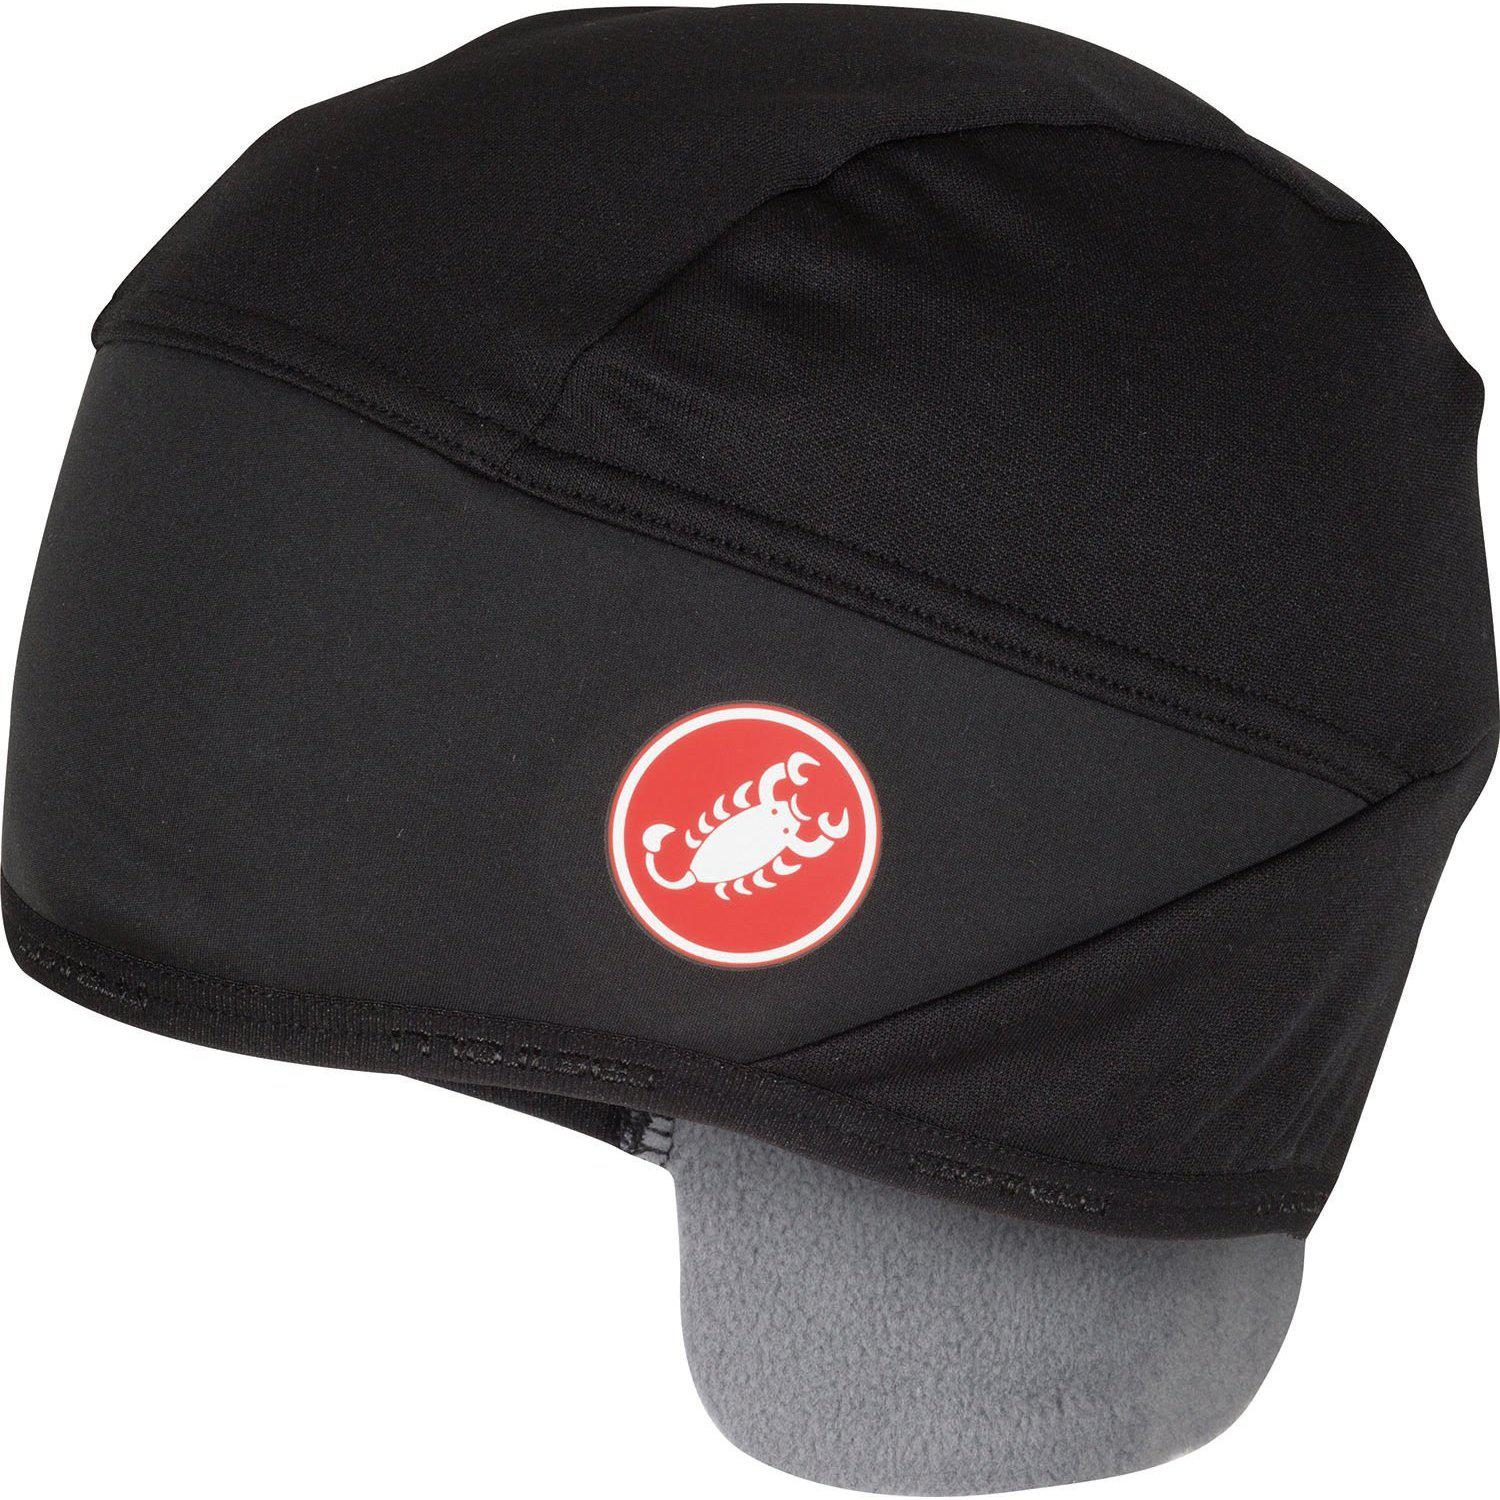 Castelli-Castelli Estremo WS Skully-Black-UNI-CS155520108-saddleback-elite-performance-cycling